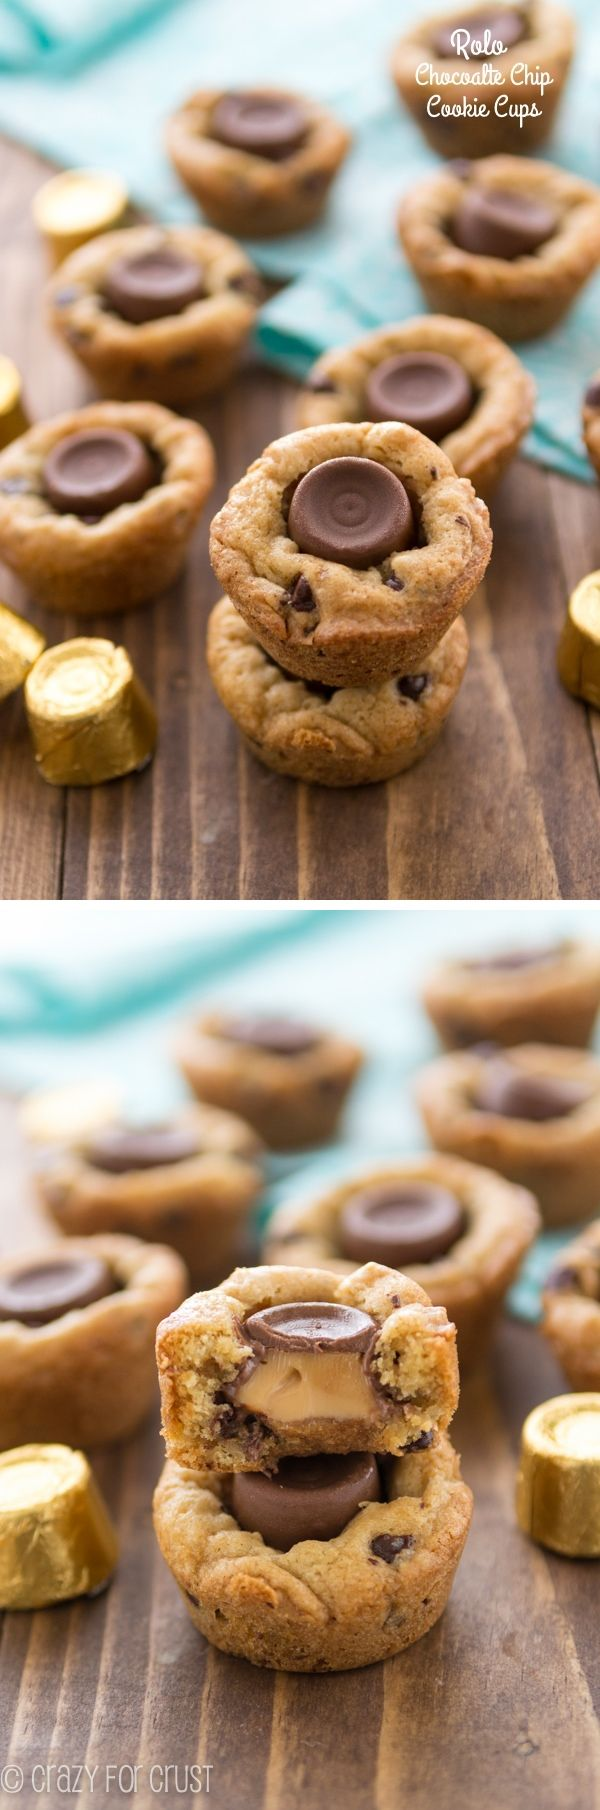 Rolo Chocoloate Chip Cookies - das wird ein Fest! #cookies #chocolat #chips # recipes #baking